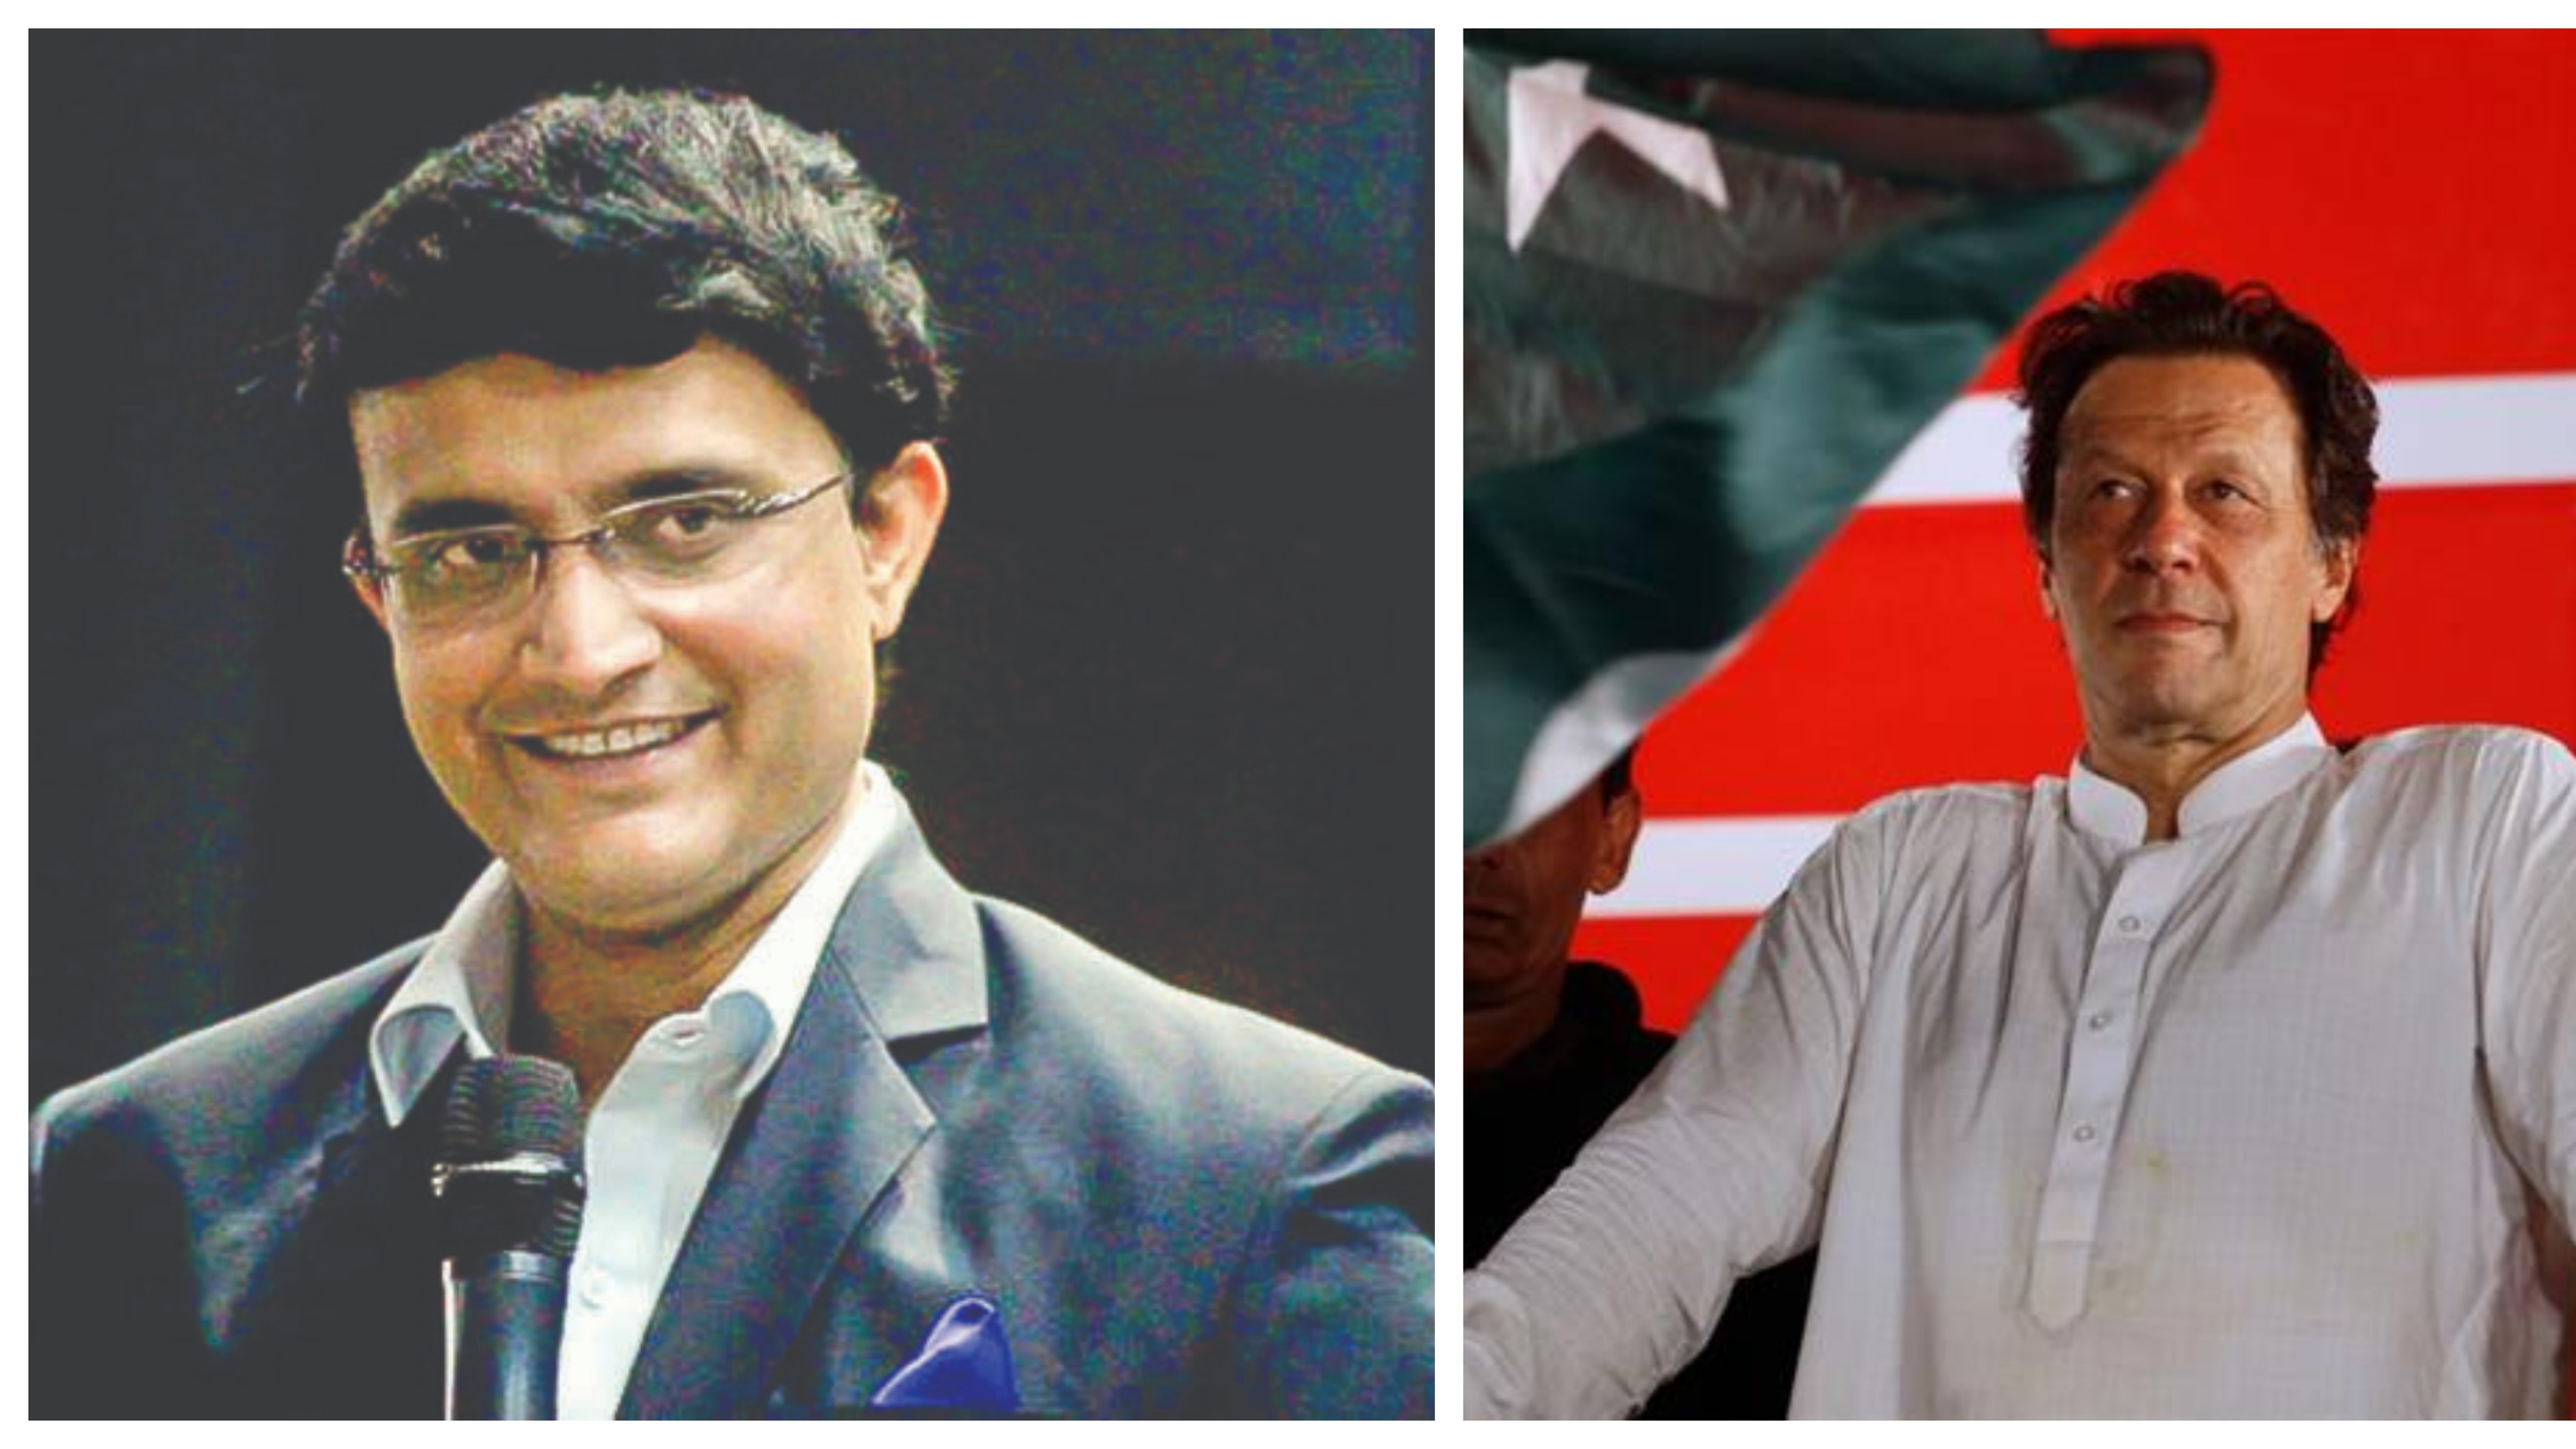 Sourav Ganguly sends his best wishes to Imran Khan after he comes to power in Pakistan